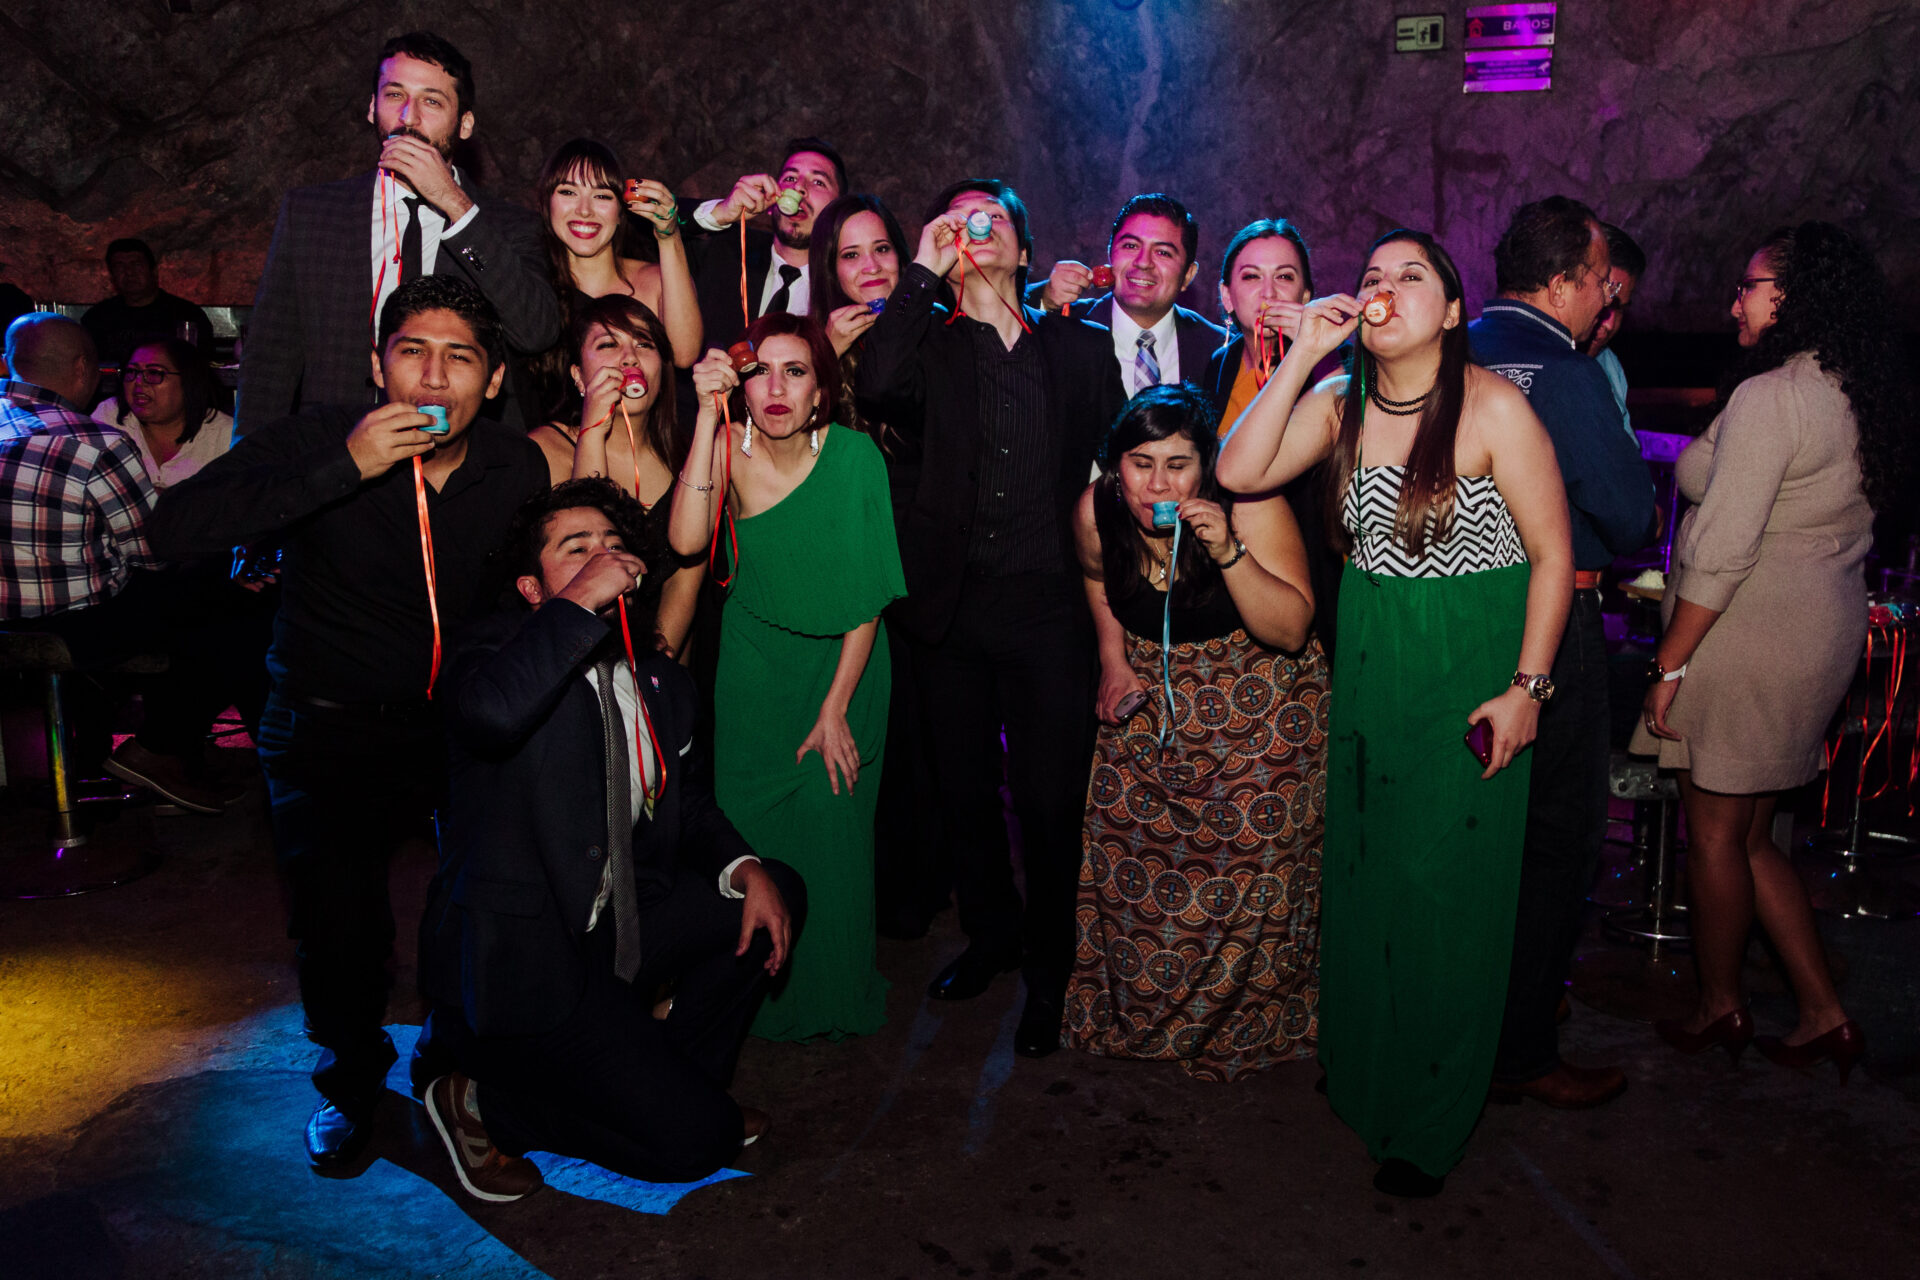 javier_noriega_fotografo_bodas_la_mina_club_zacatecas_wedding_photographer25